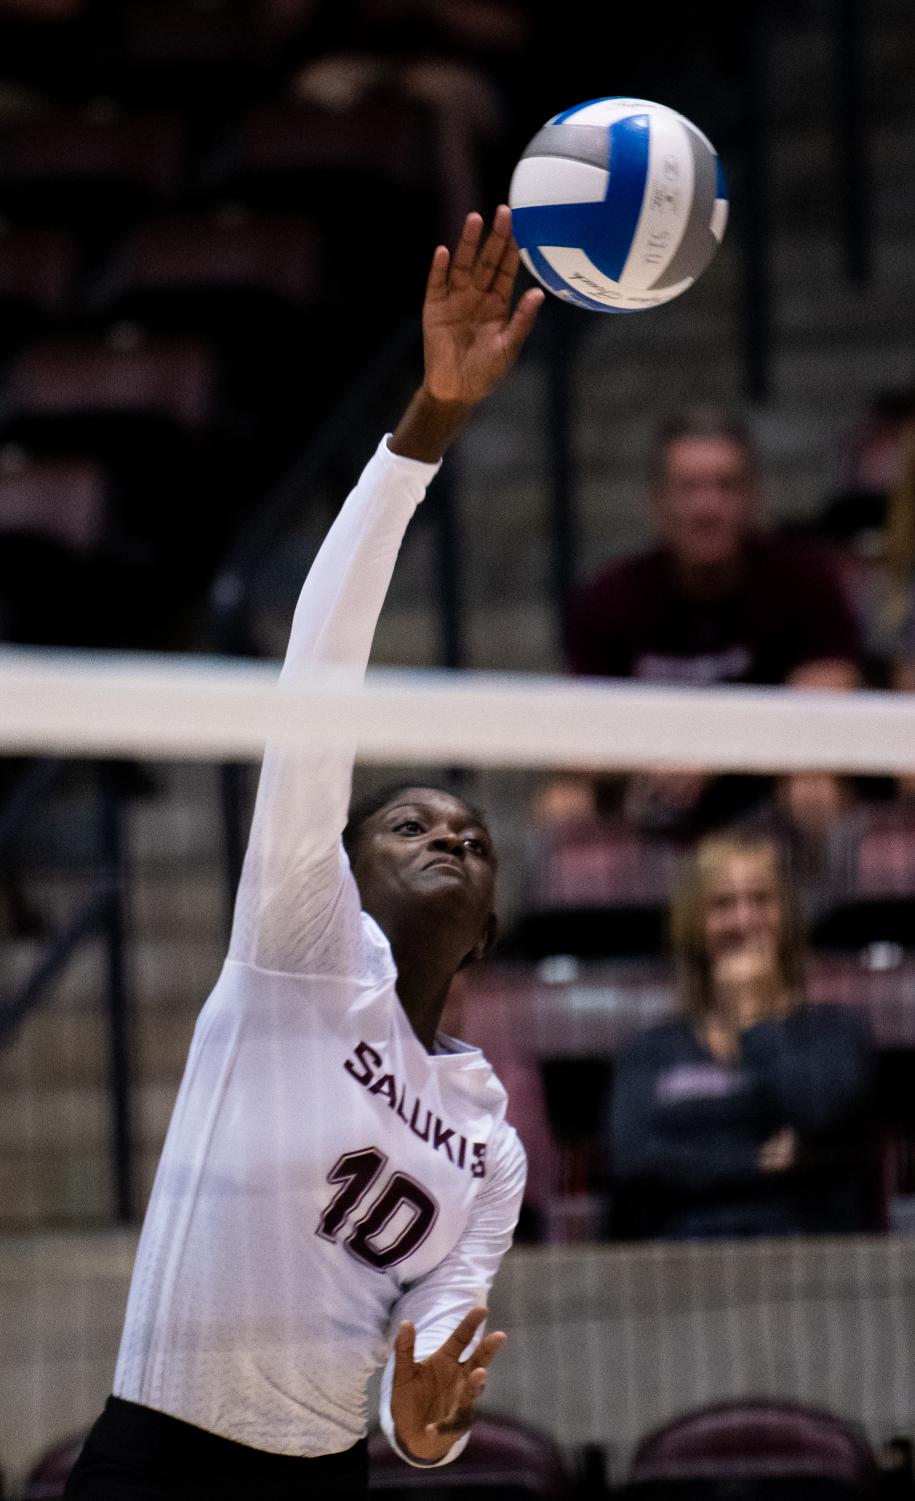 Junior+outside+hitter+Savannah+Sheridan+on+Saturday%2C+Sept.+7%2C+2019+during+the+Salukis%E2%80%99+3-1+win+against+the+Southeastern+Louisiana+University+Lions+at+the+Banterra+Center.+